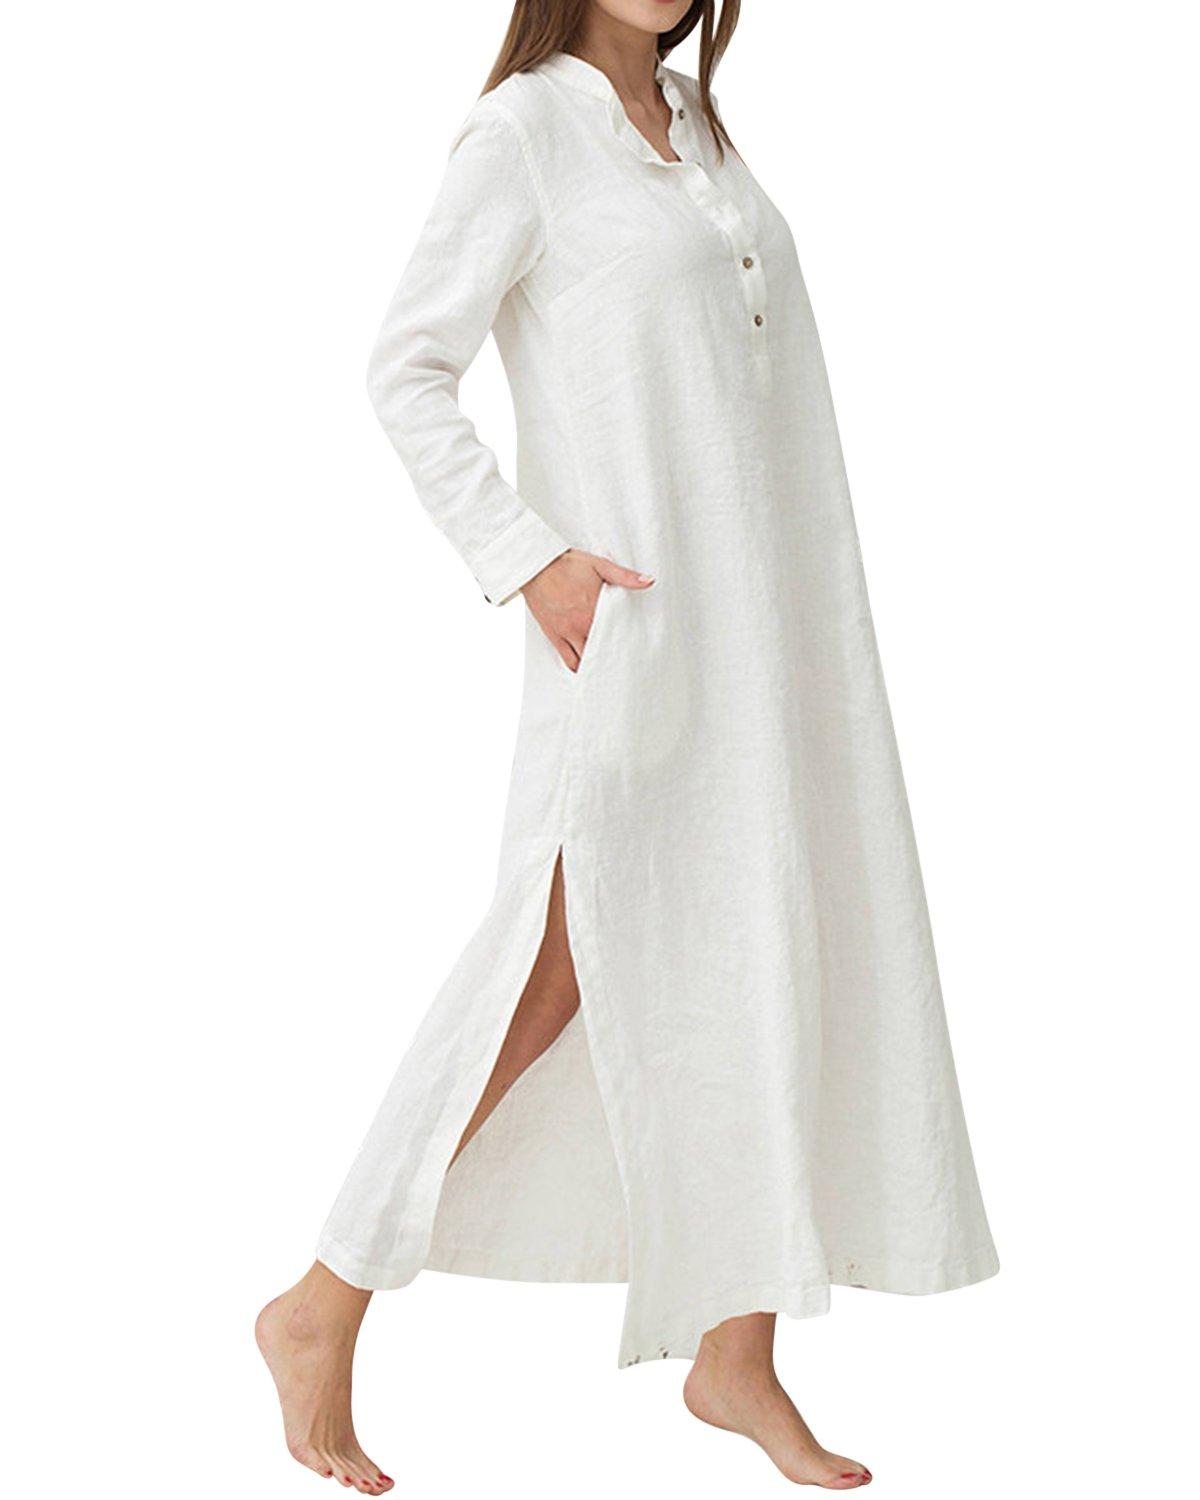 Jacansi Women Vintage Oversized Polo Neck Split Hem Cotton Linen Long Dress White M